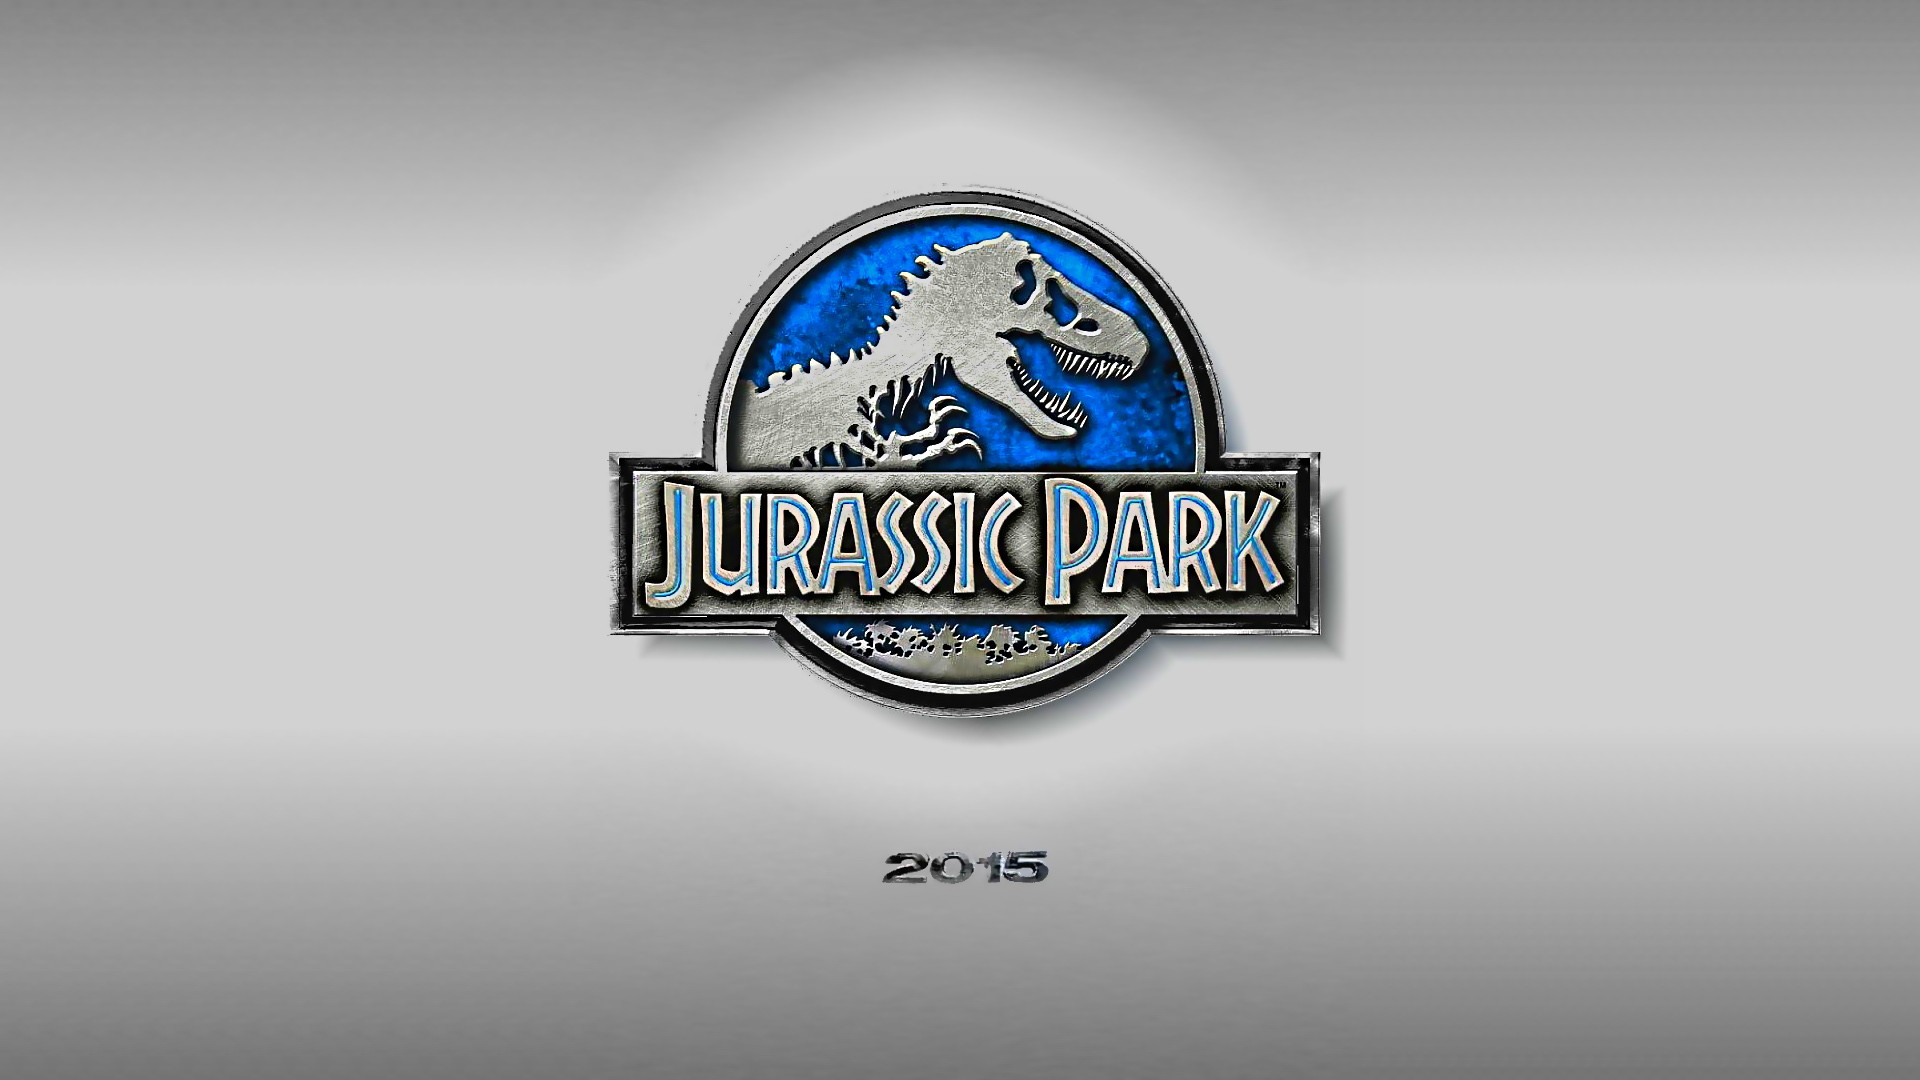 Iphone X Wallpaper Official Jurassic Park 4 2015 Wallpapers Hd Wallpapers Id 12785